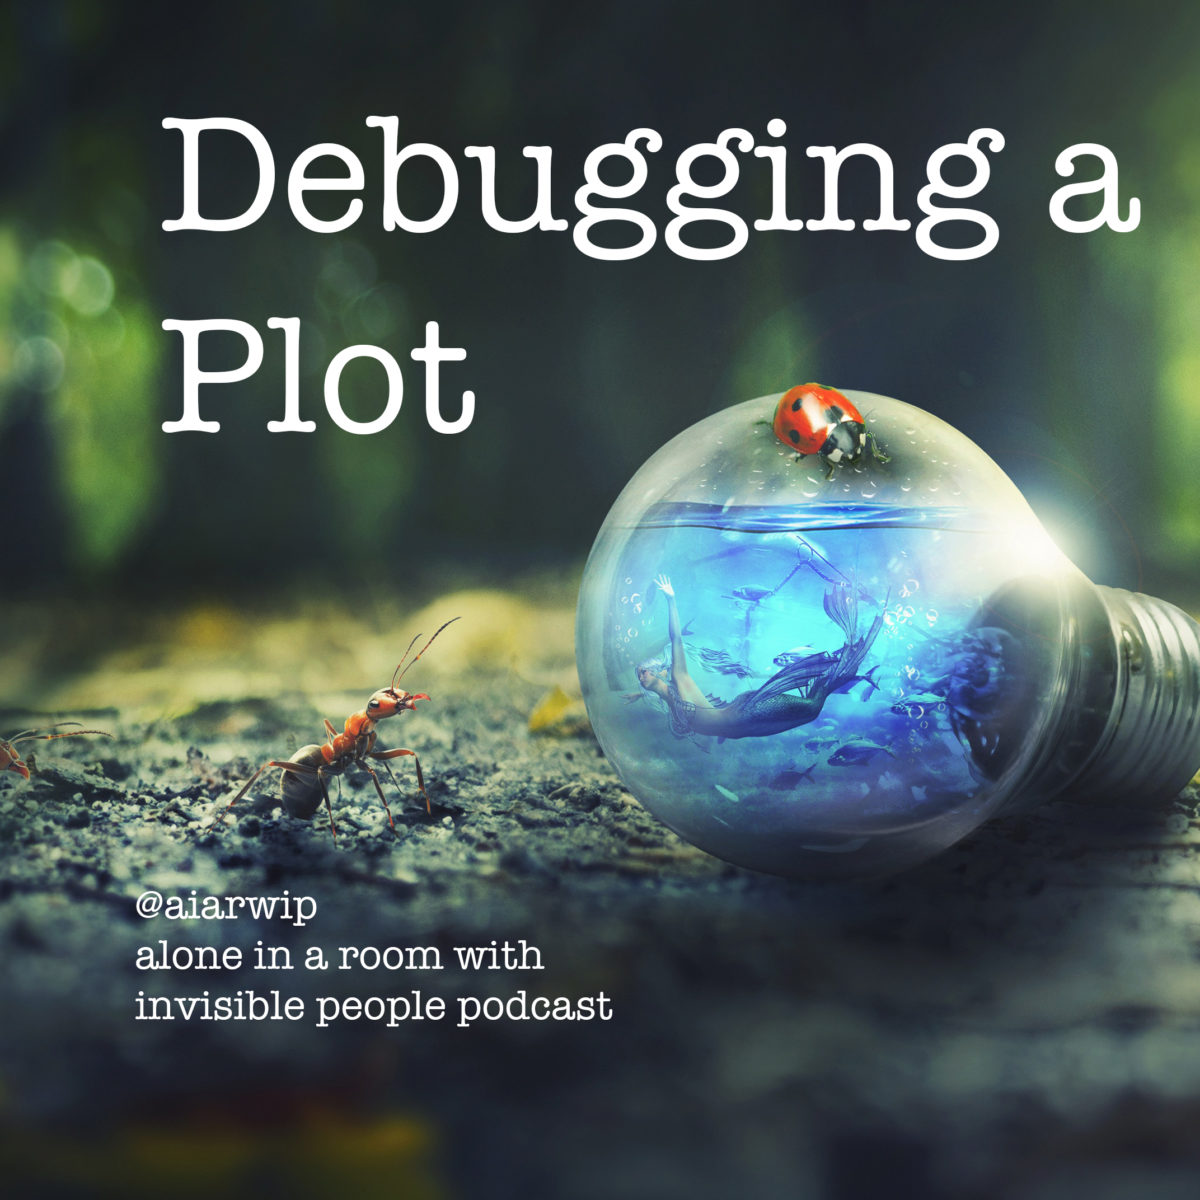 Episode 03: Debugging a Plot